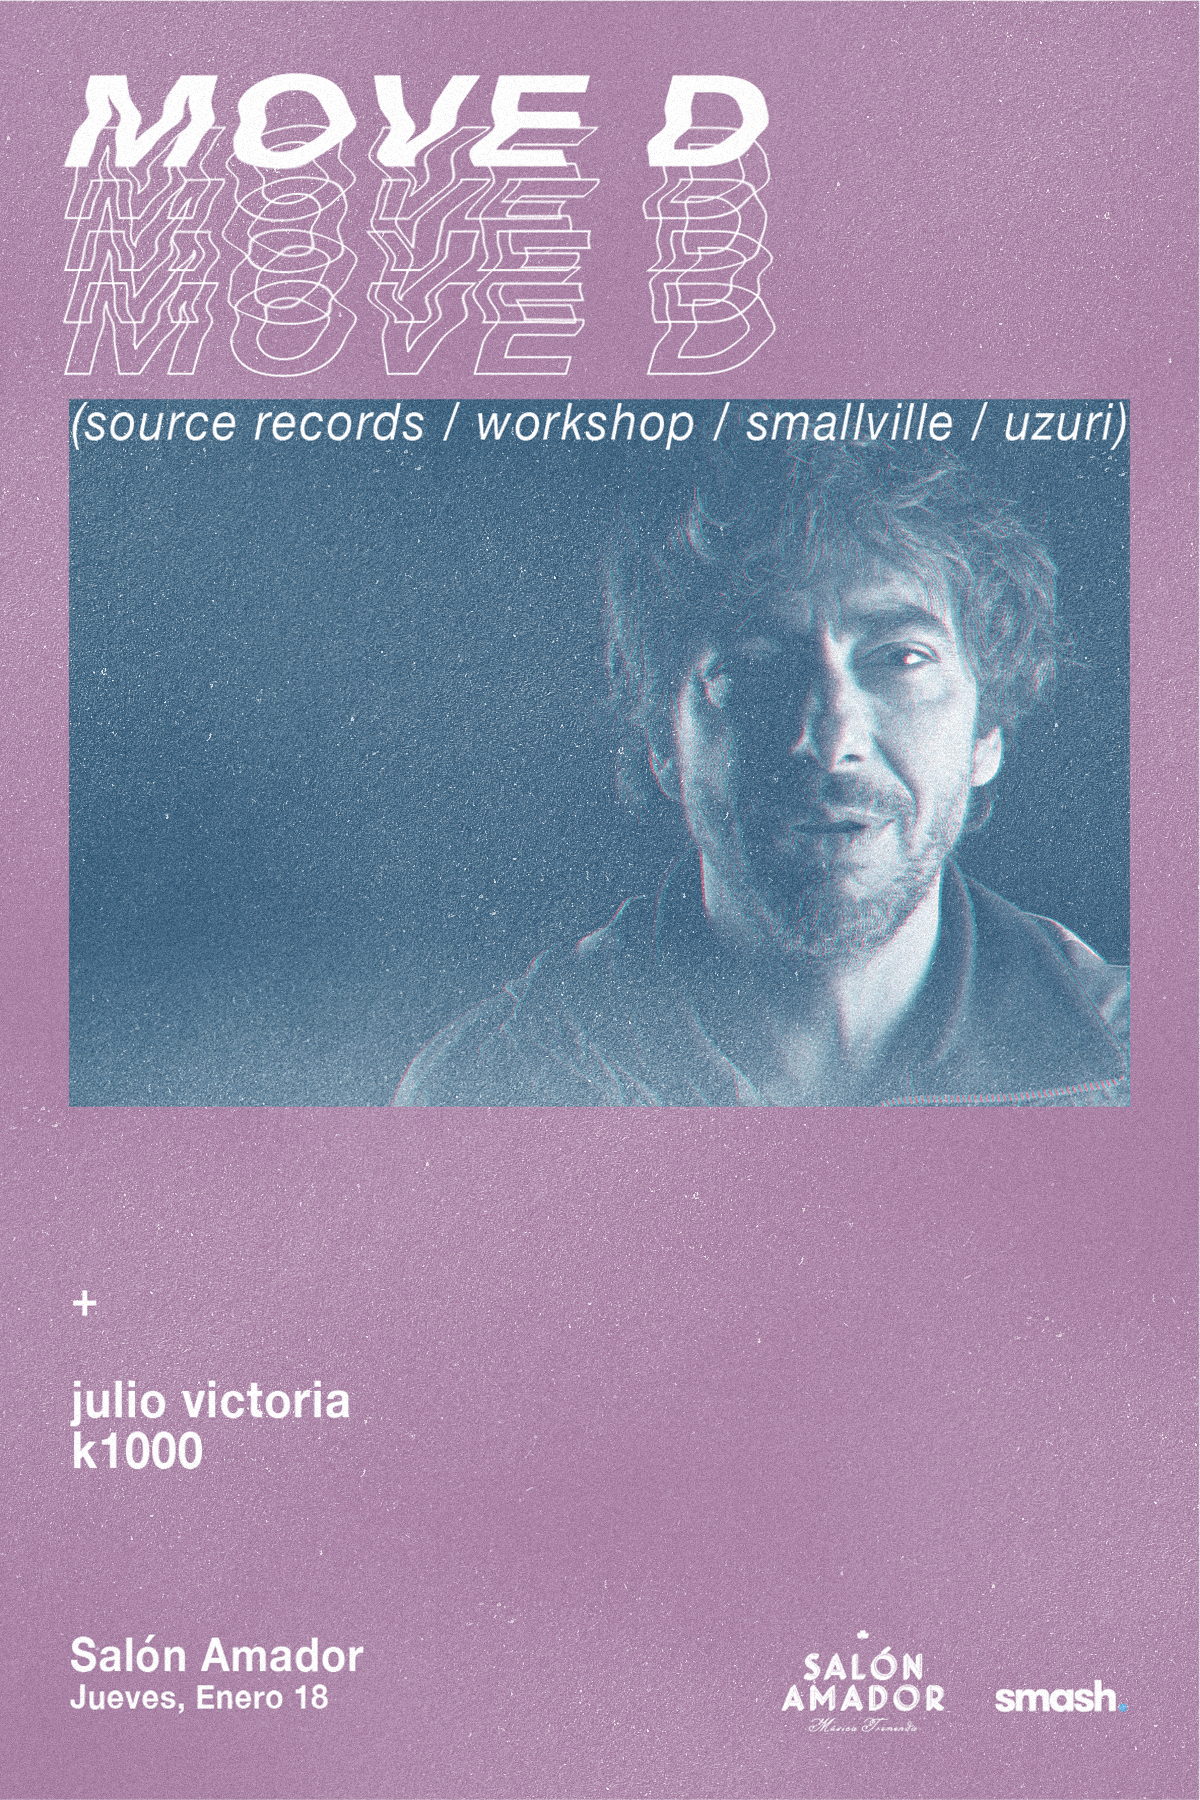 17-20-juliovictoria-moved-03.png